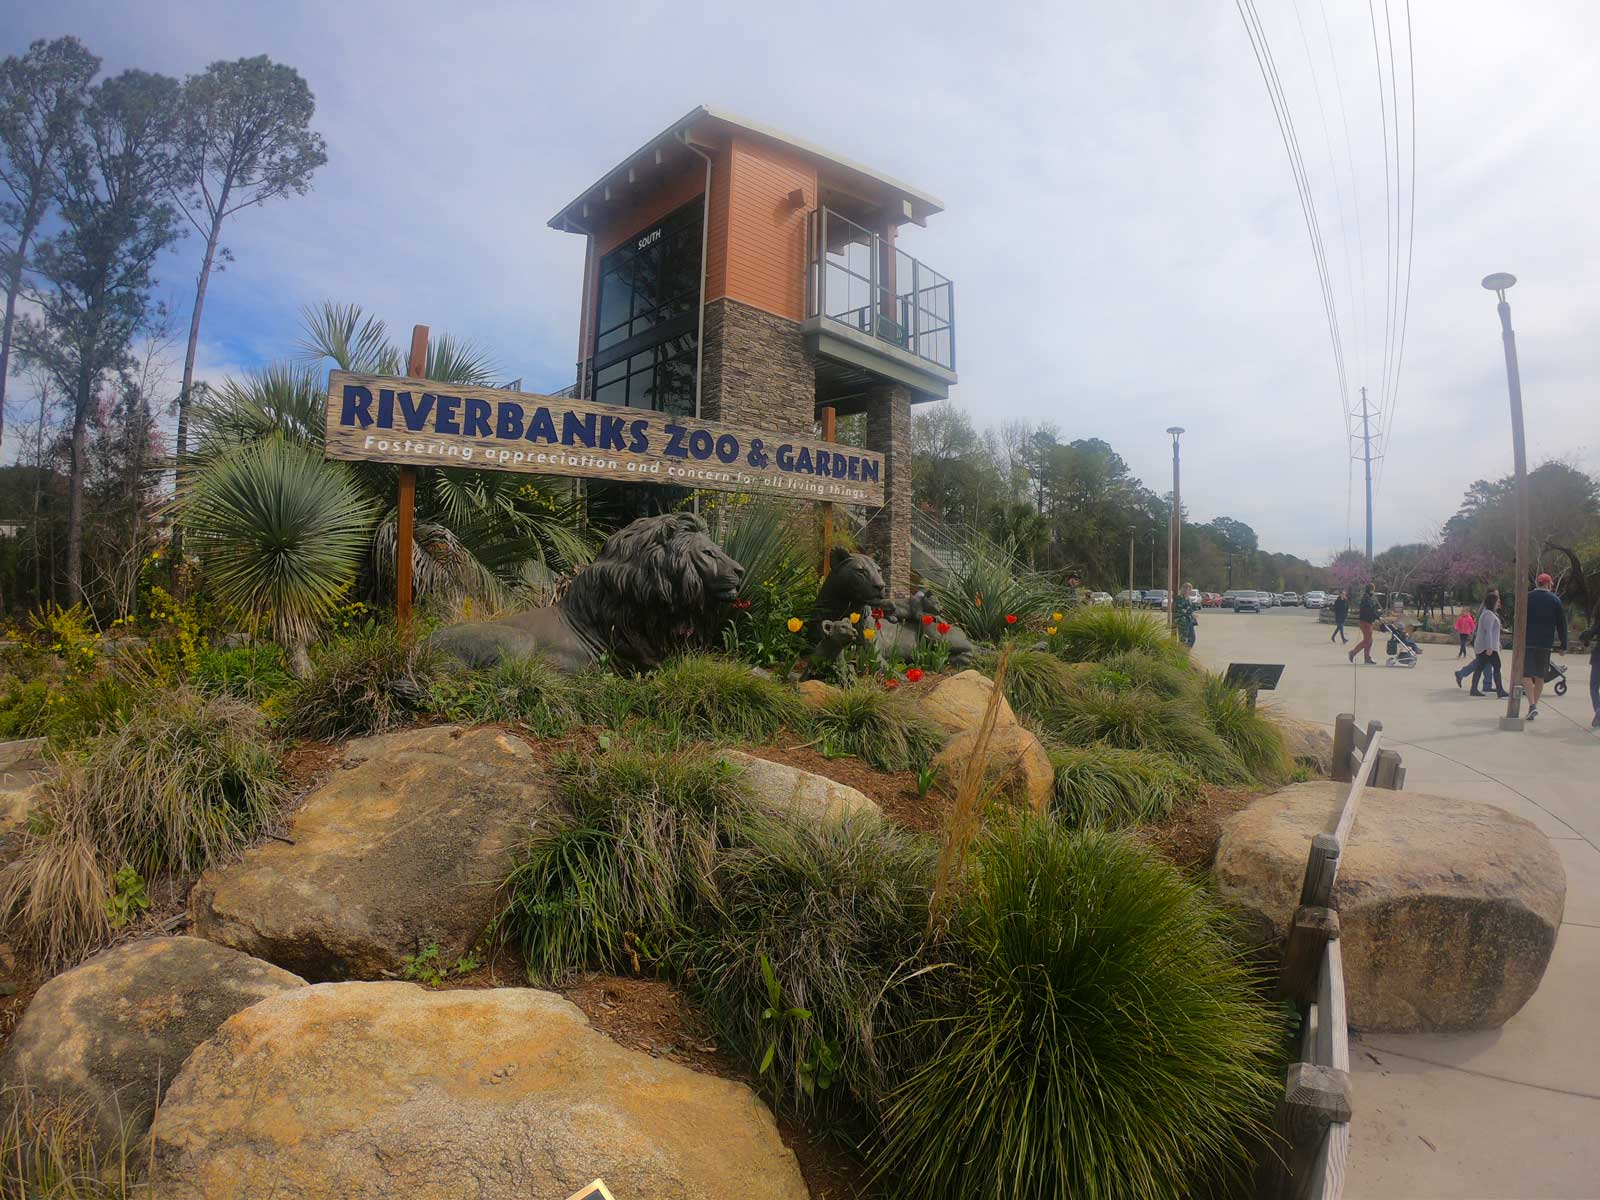 Front entrance to Riverbanks Zoo & Garden, Columbia, SC